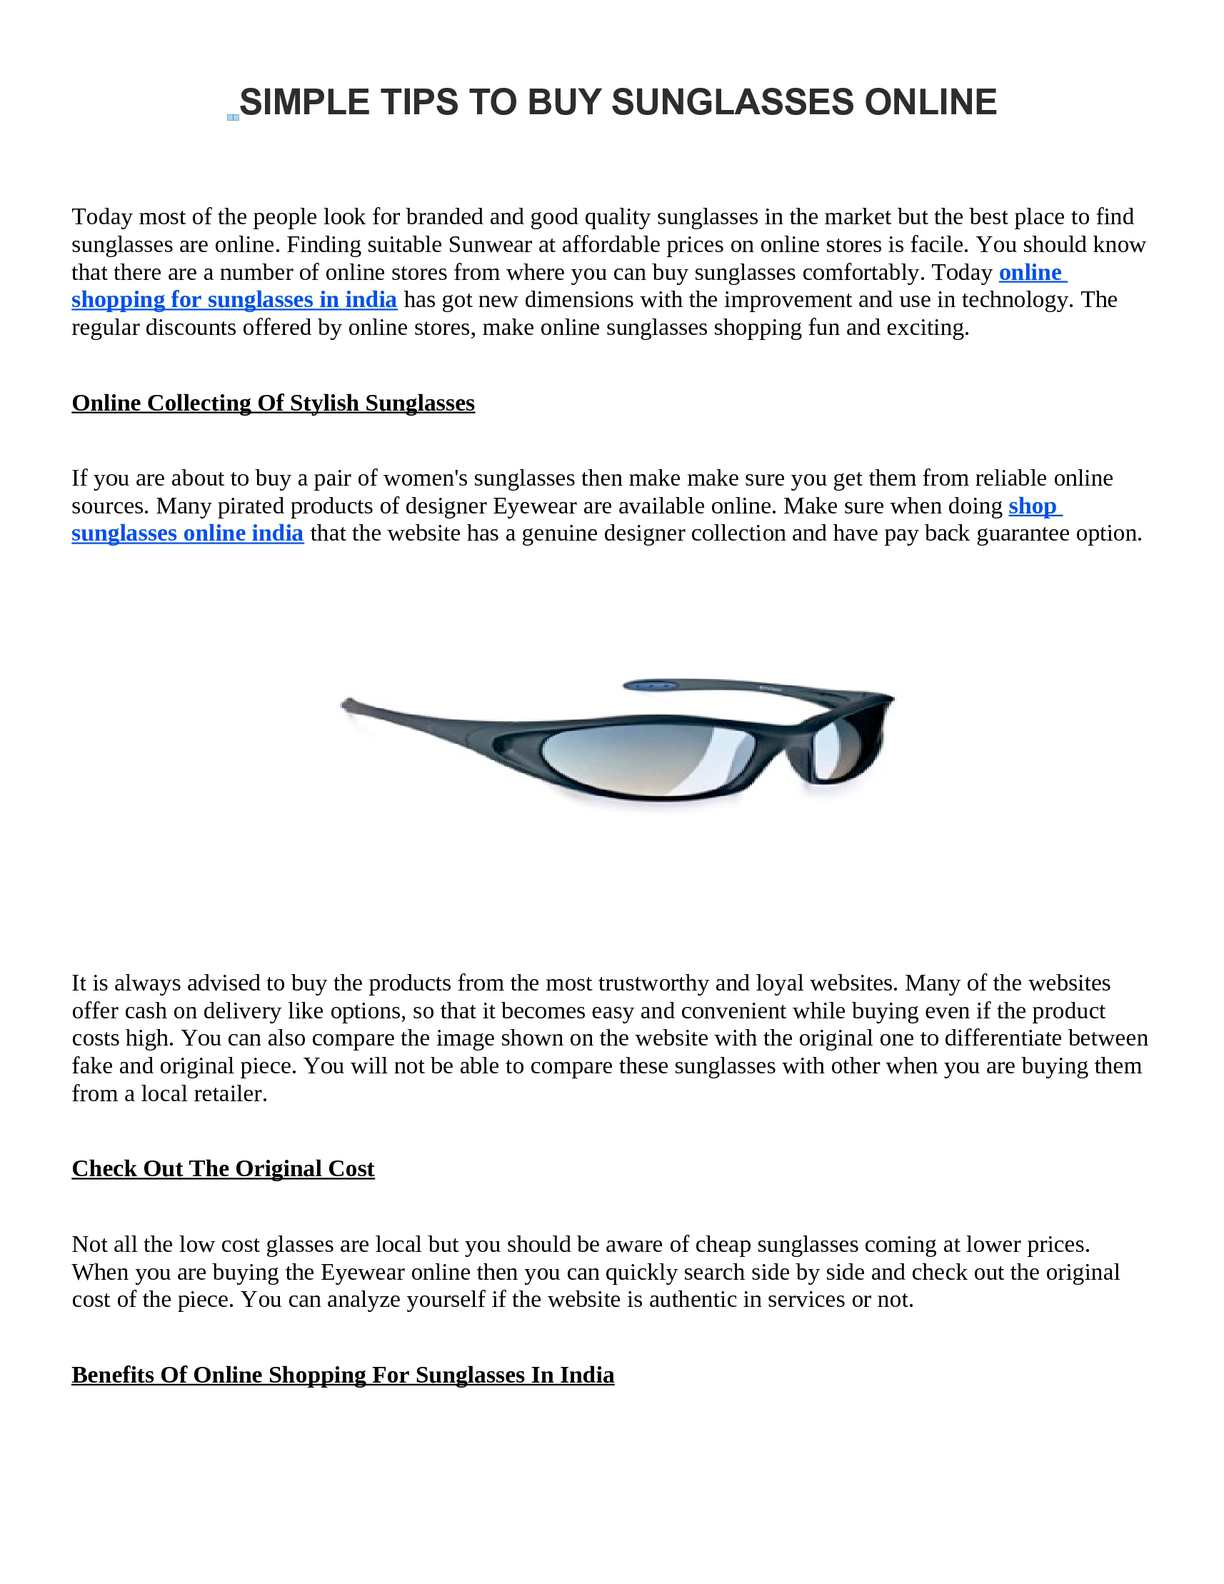 dc66086f3dd Calaméo - SIMPLE TIPS TO BUY SUNGLASSES ONLINE